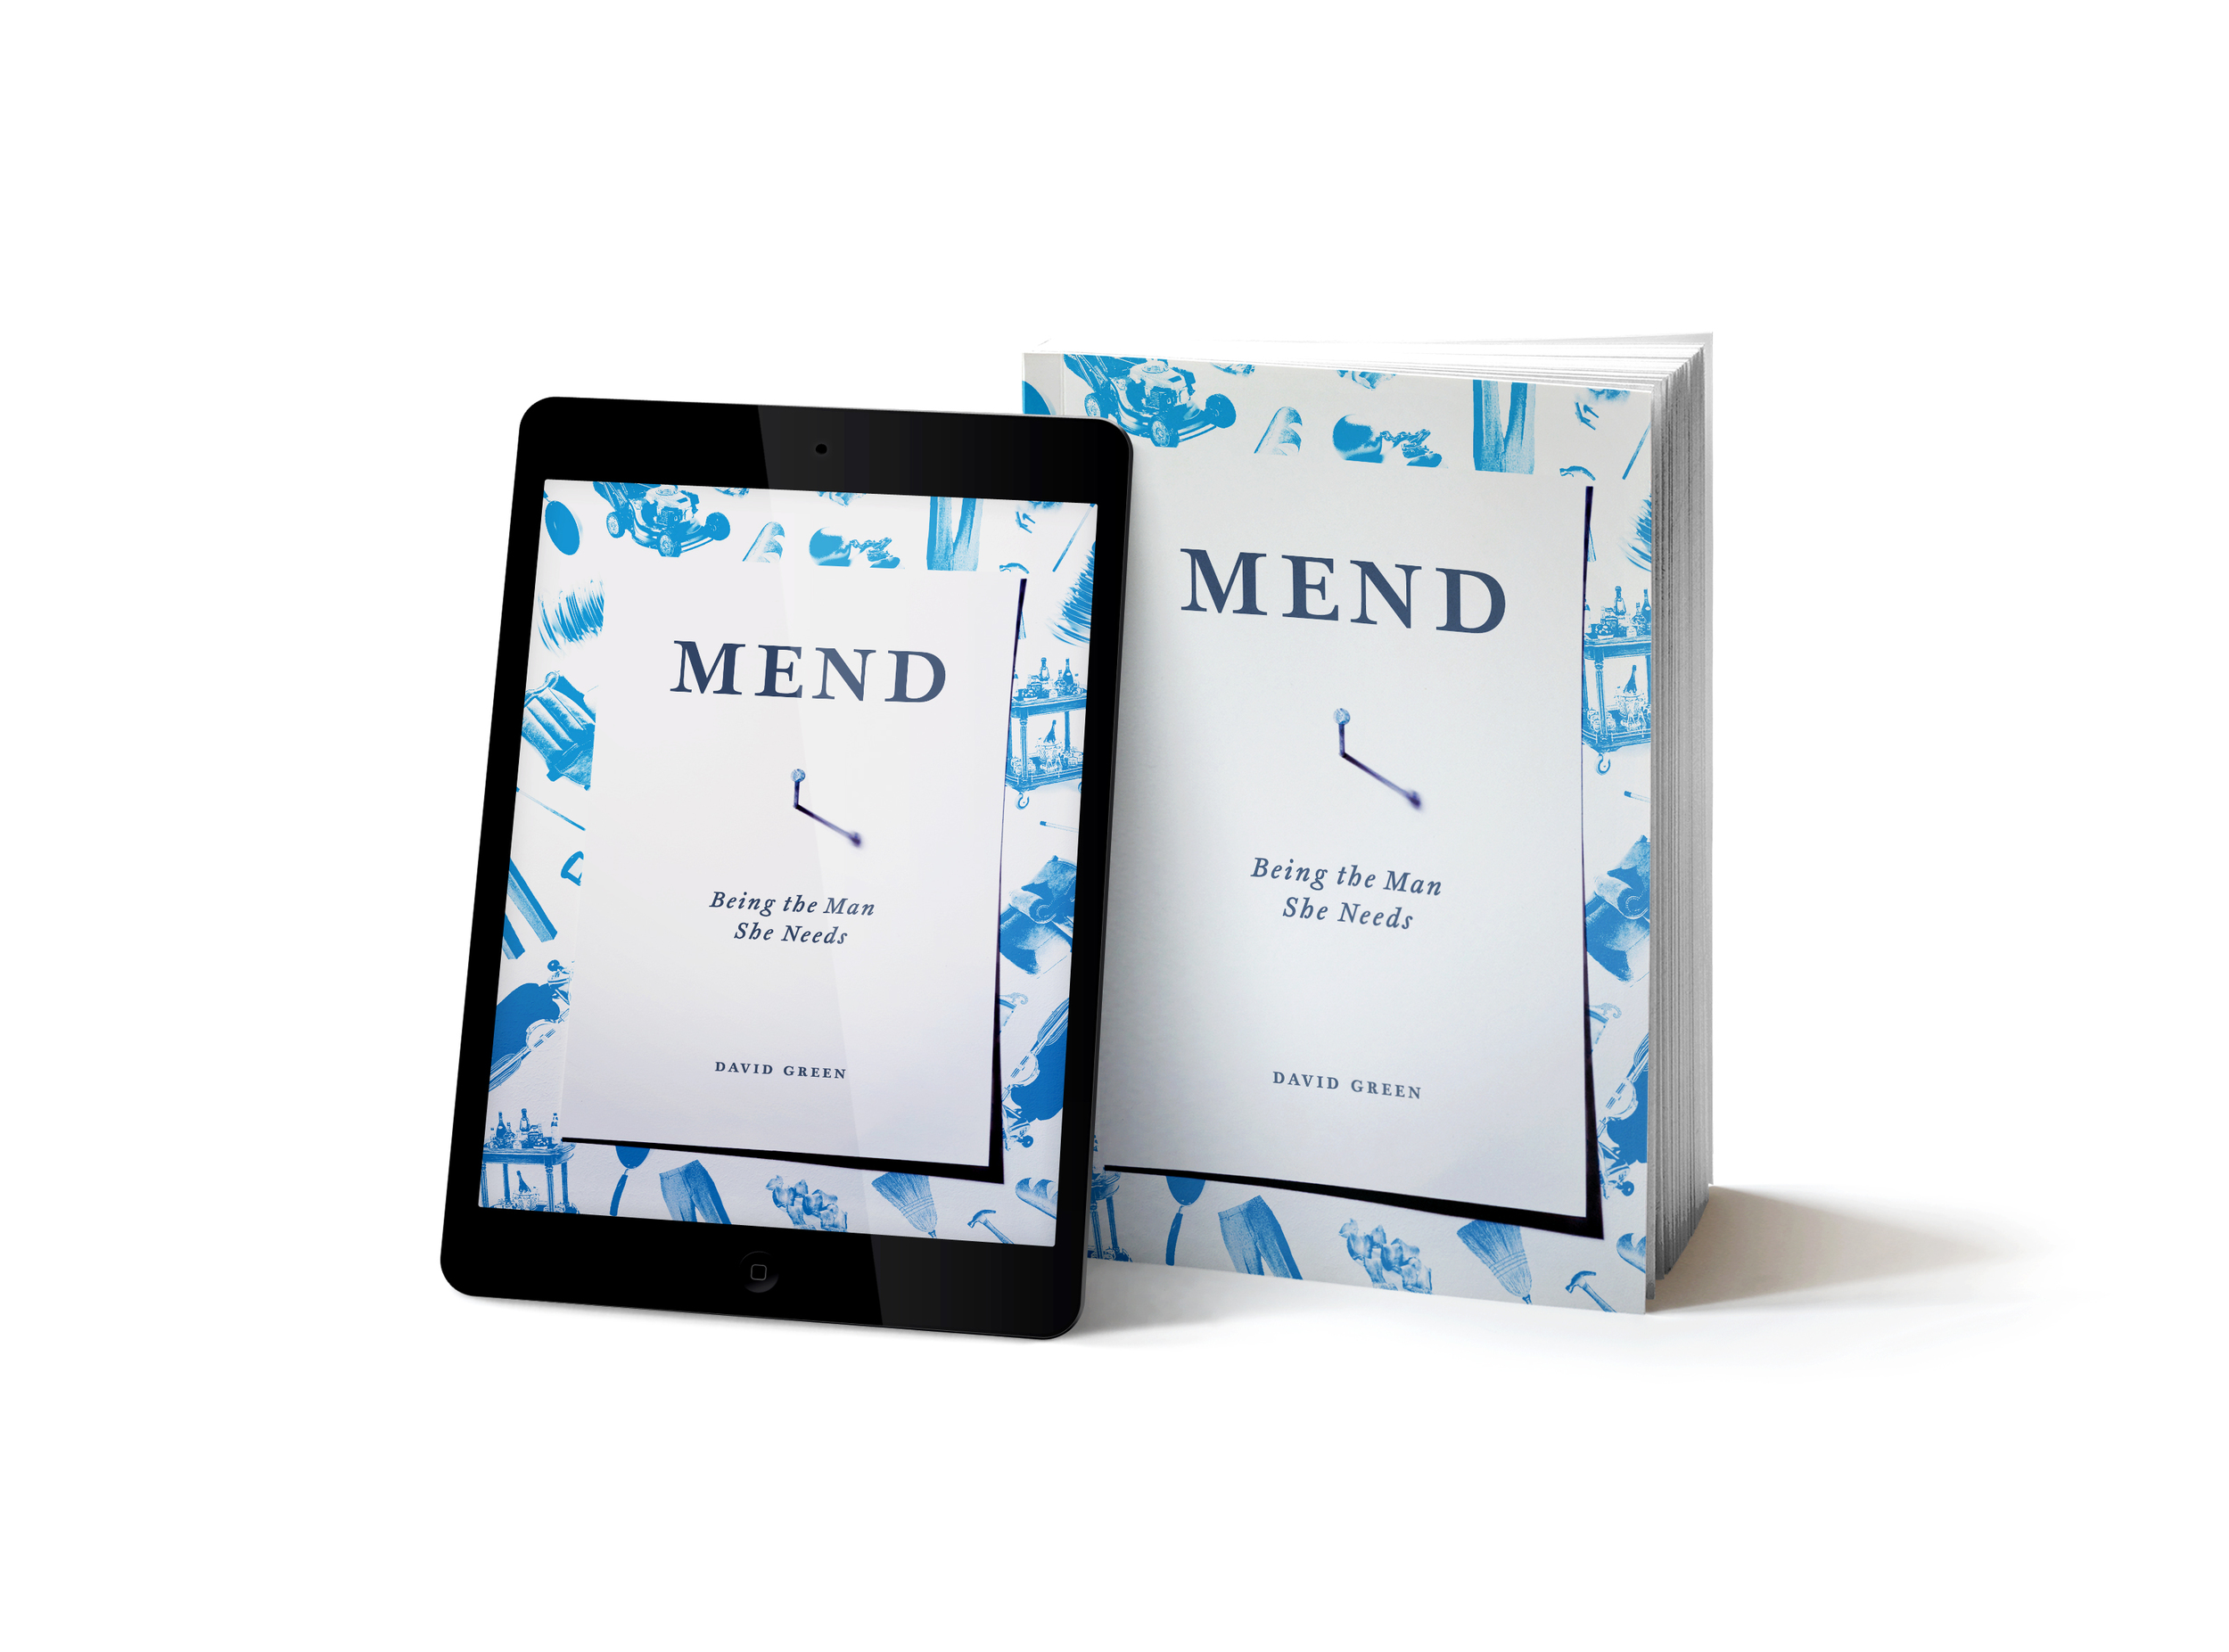 MEND_eBook_White.jpg